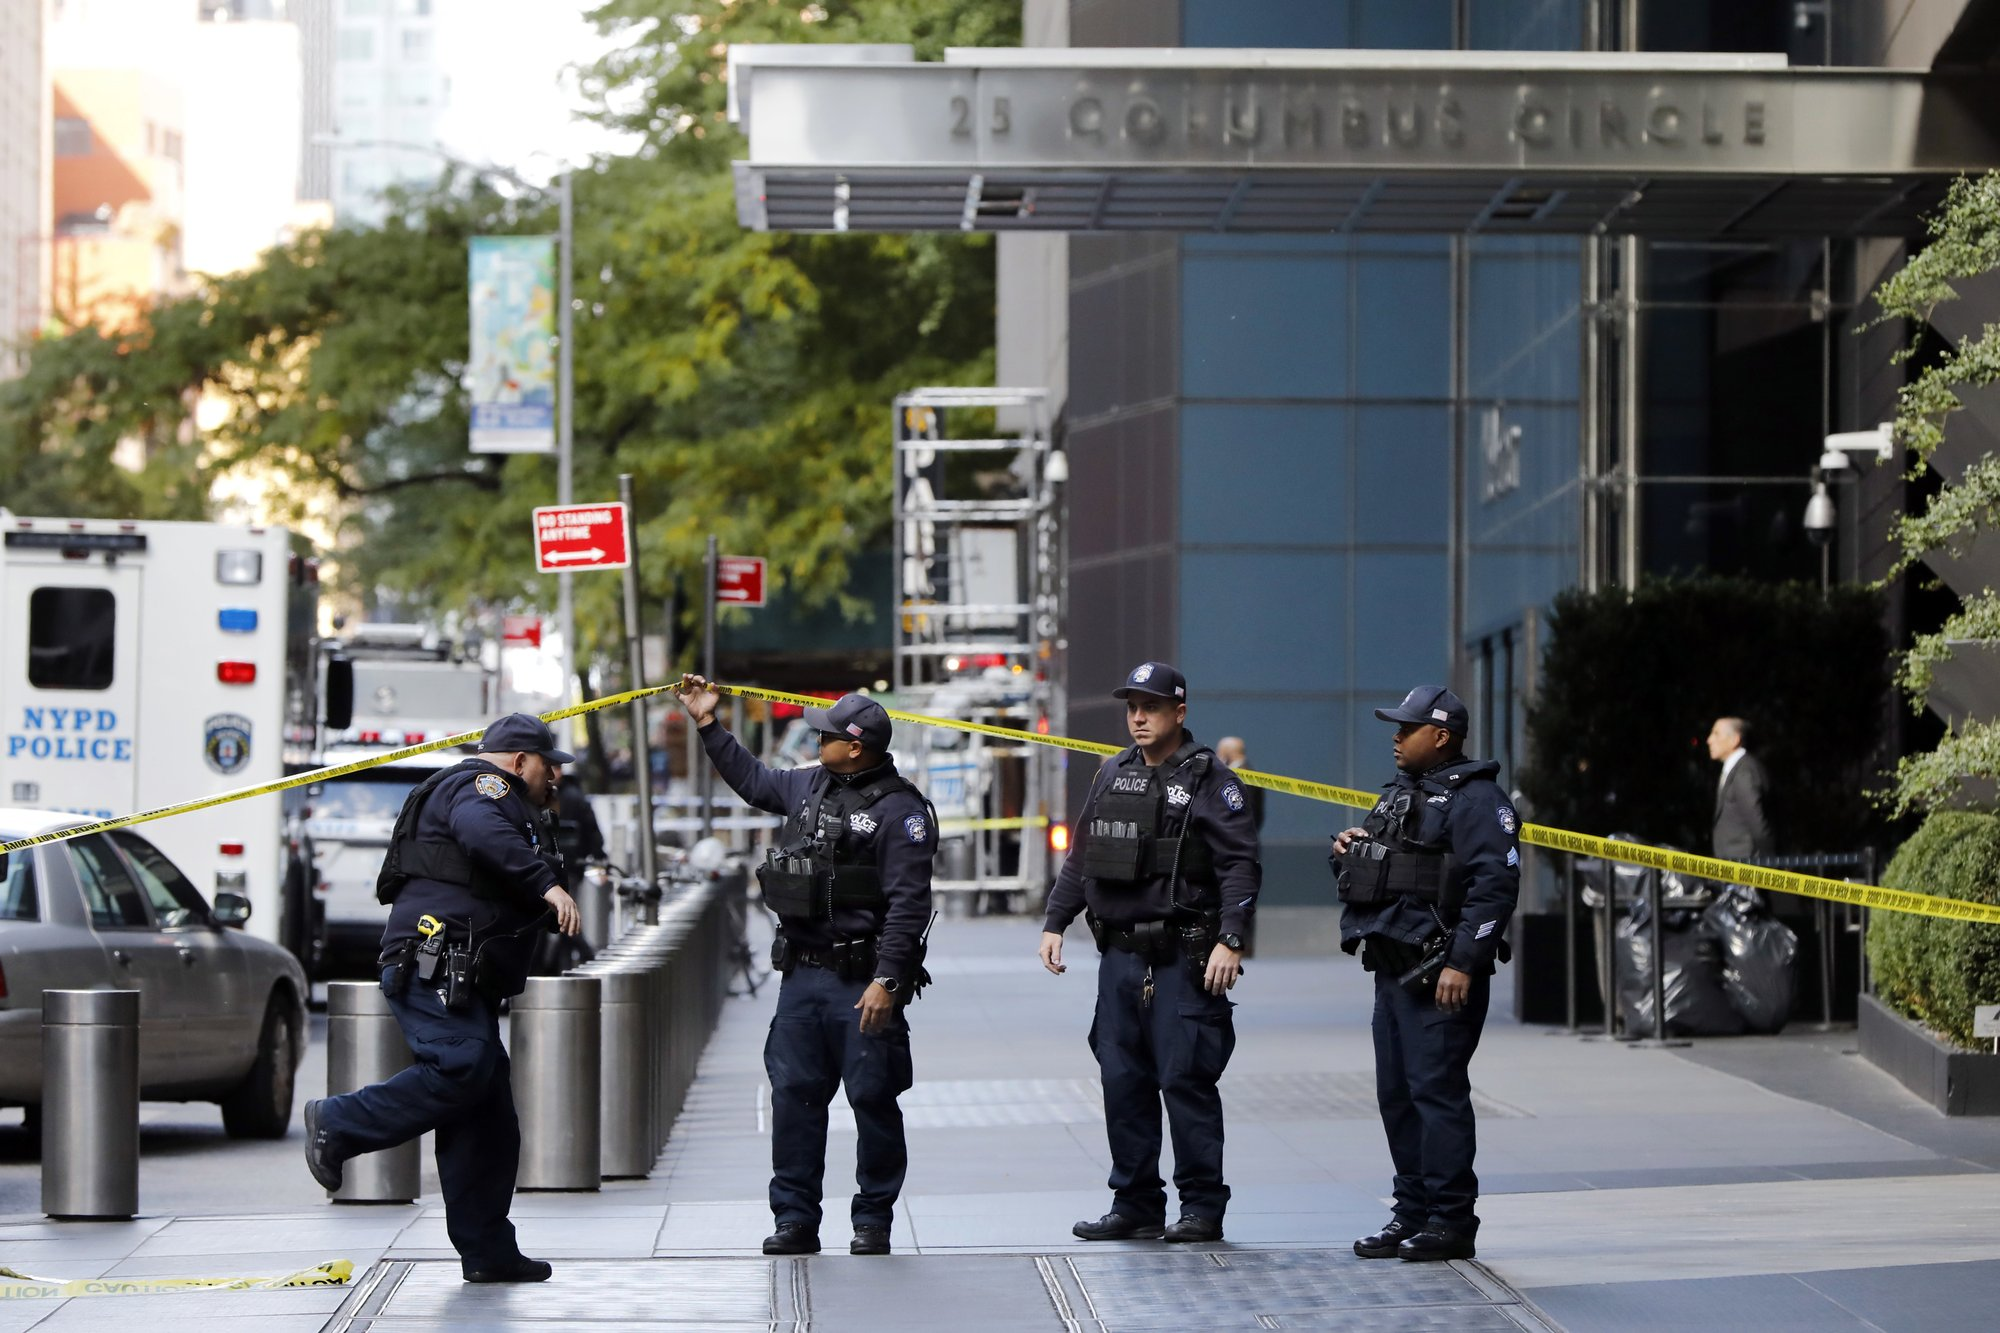 Crude pipe bombs sent to Obama, Clintons, CNN; no injuries